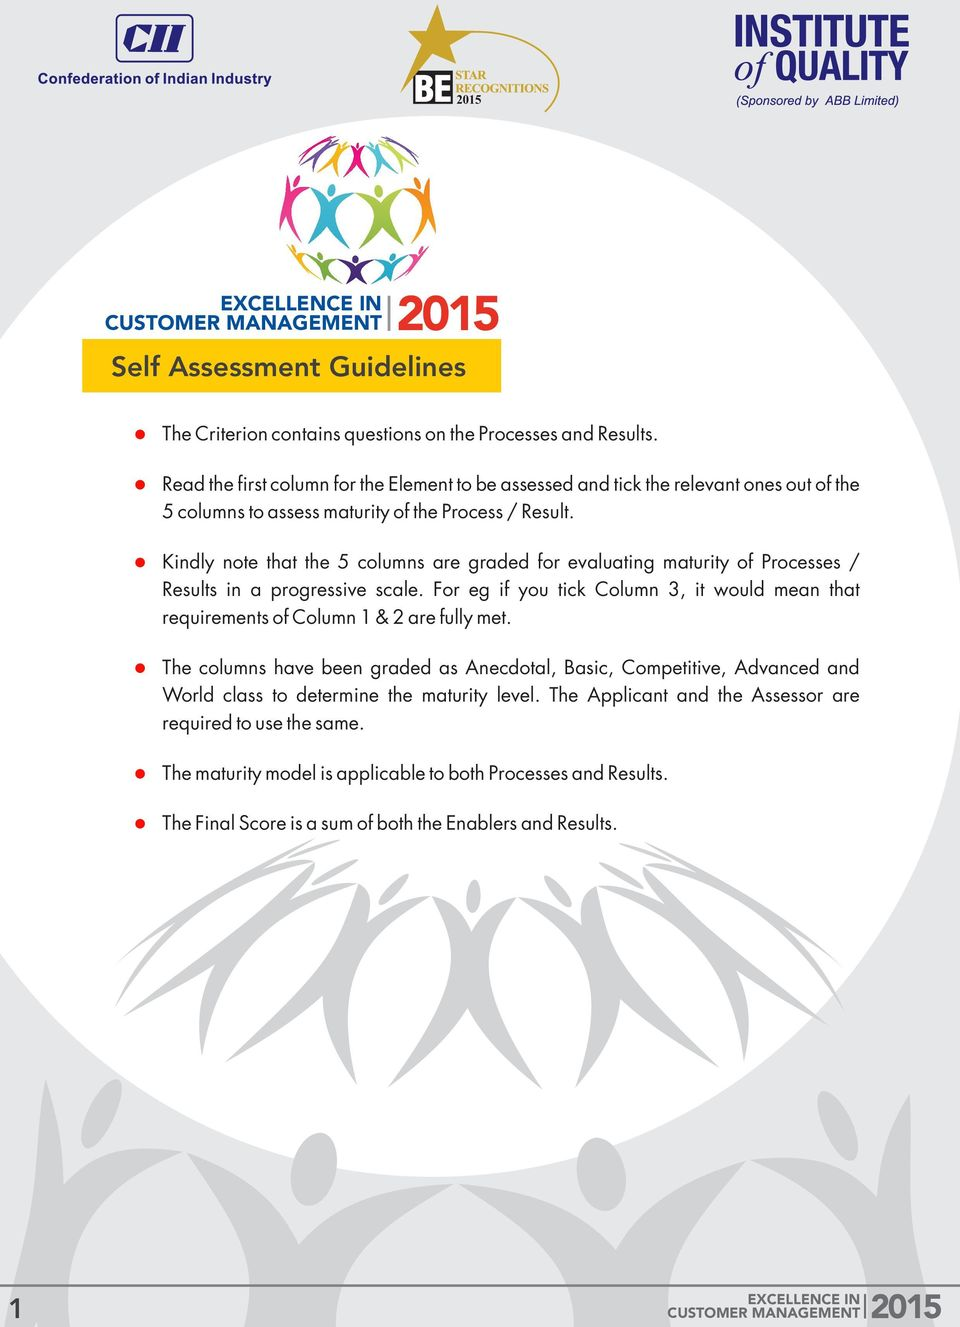 Kindly note that the 5 columns are graded for evaluating maturity of Processes / Results in a progressive scale.